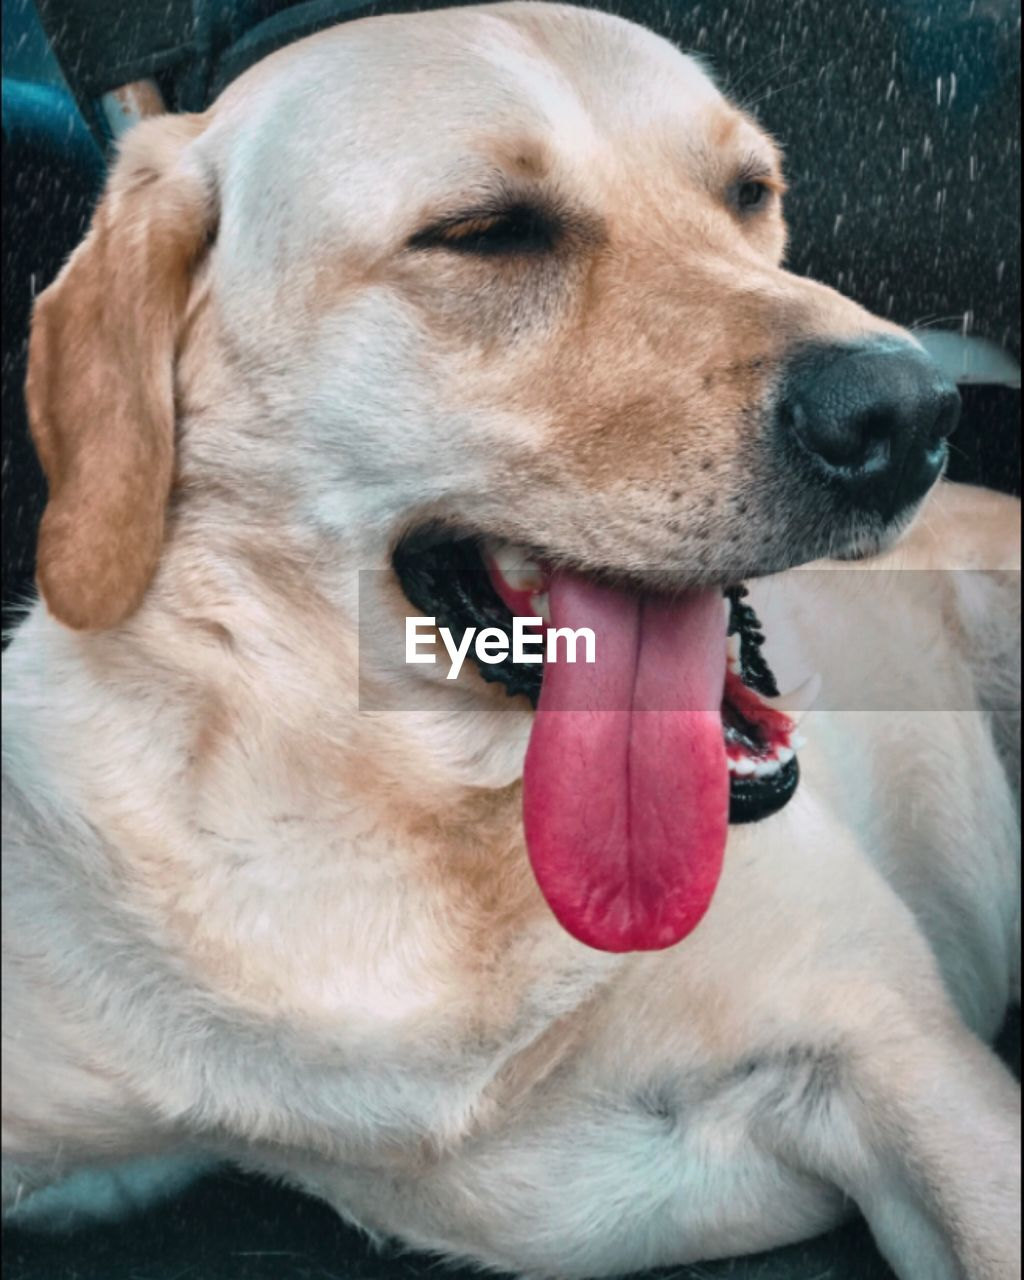 one animal, domestic, mammal, dog, canine, animal themes, pets, animal, domestic animals, close-up, vertebrate, mouth, mouth open, animal body part, facial expression, animal head, no people, animal tongue, focus on foreground, sticking out tongue, animal mouth, animal nose, whisker